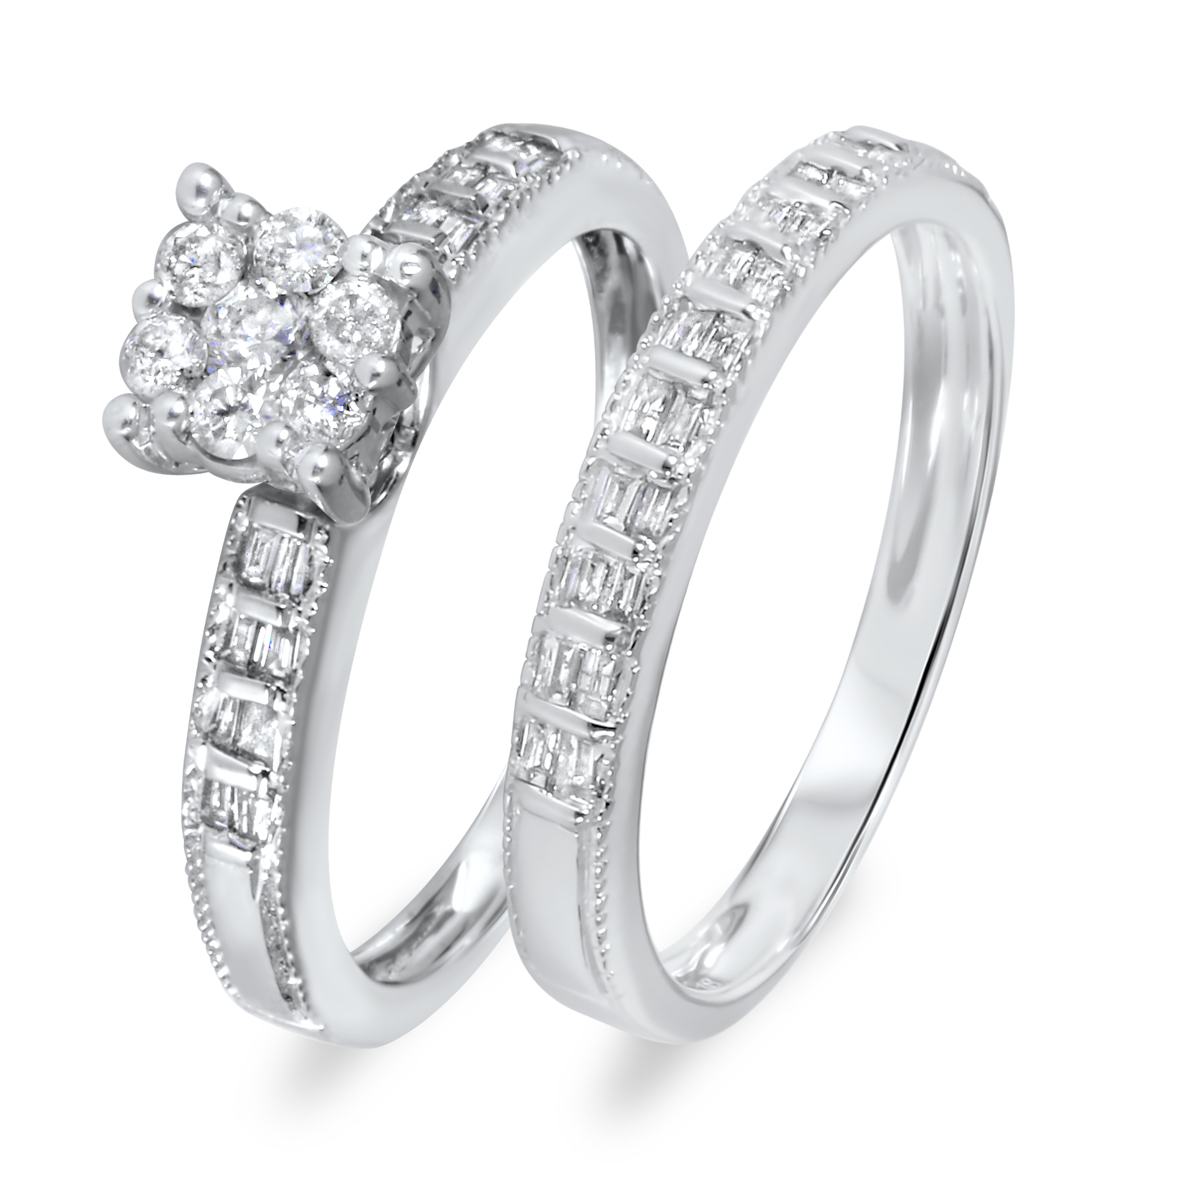 1/2 CT. T.W. Diamond Women's Bridal Wedding Ring Set 14K White Gold